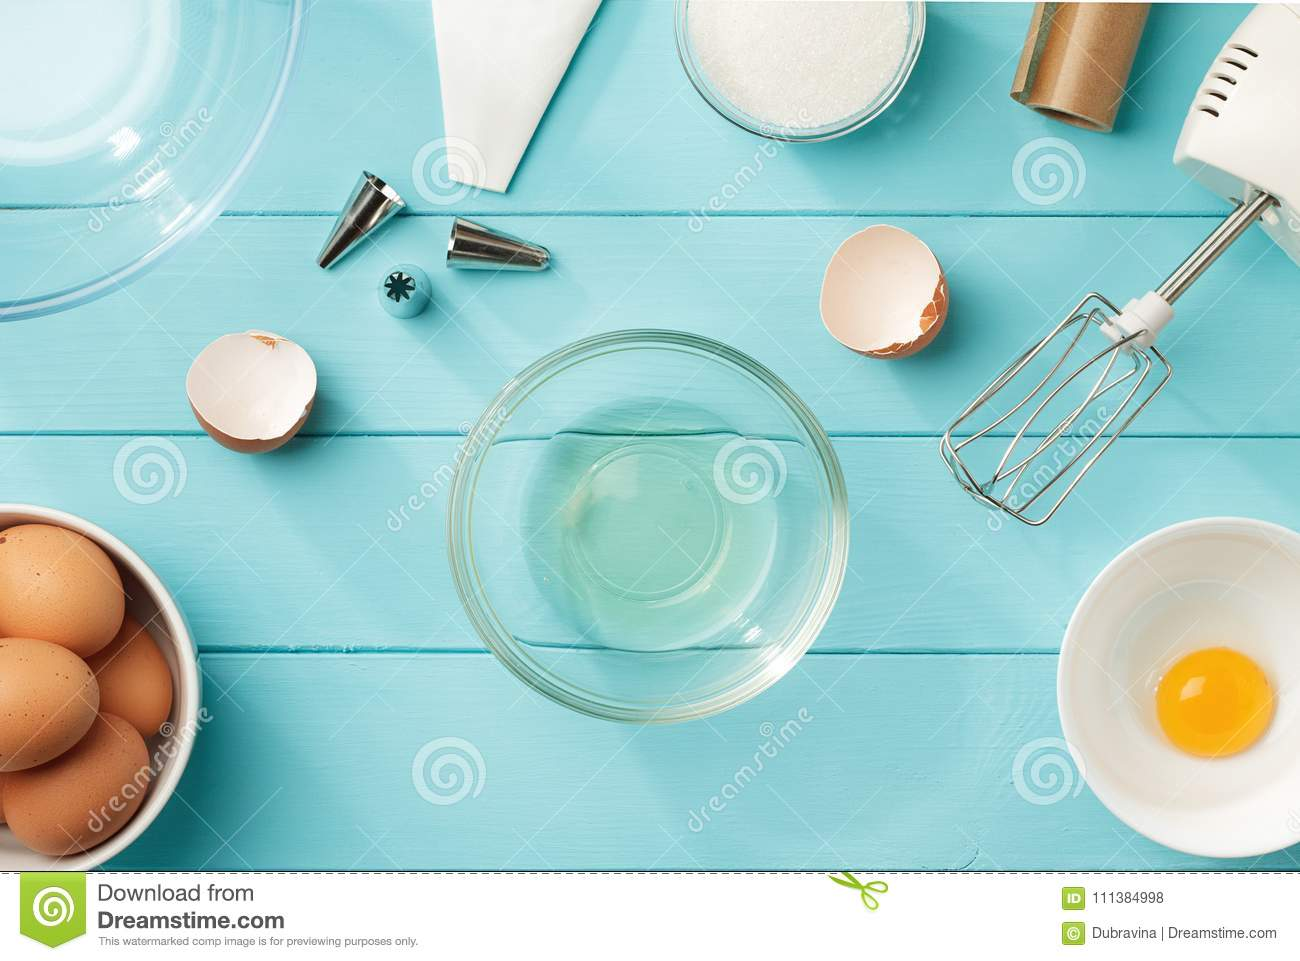 Culinary background with separated egg whites and yolks in the bowls on blue wooden table.